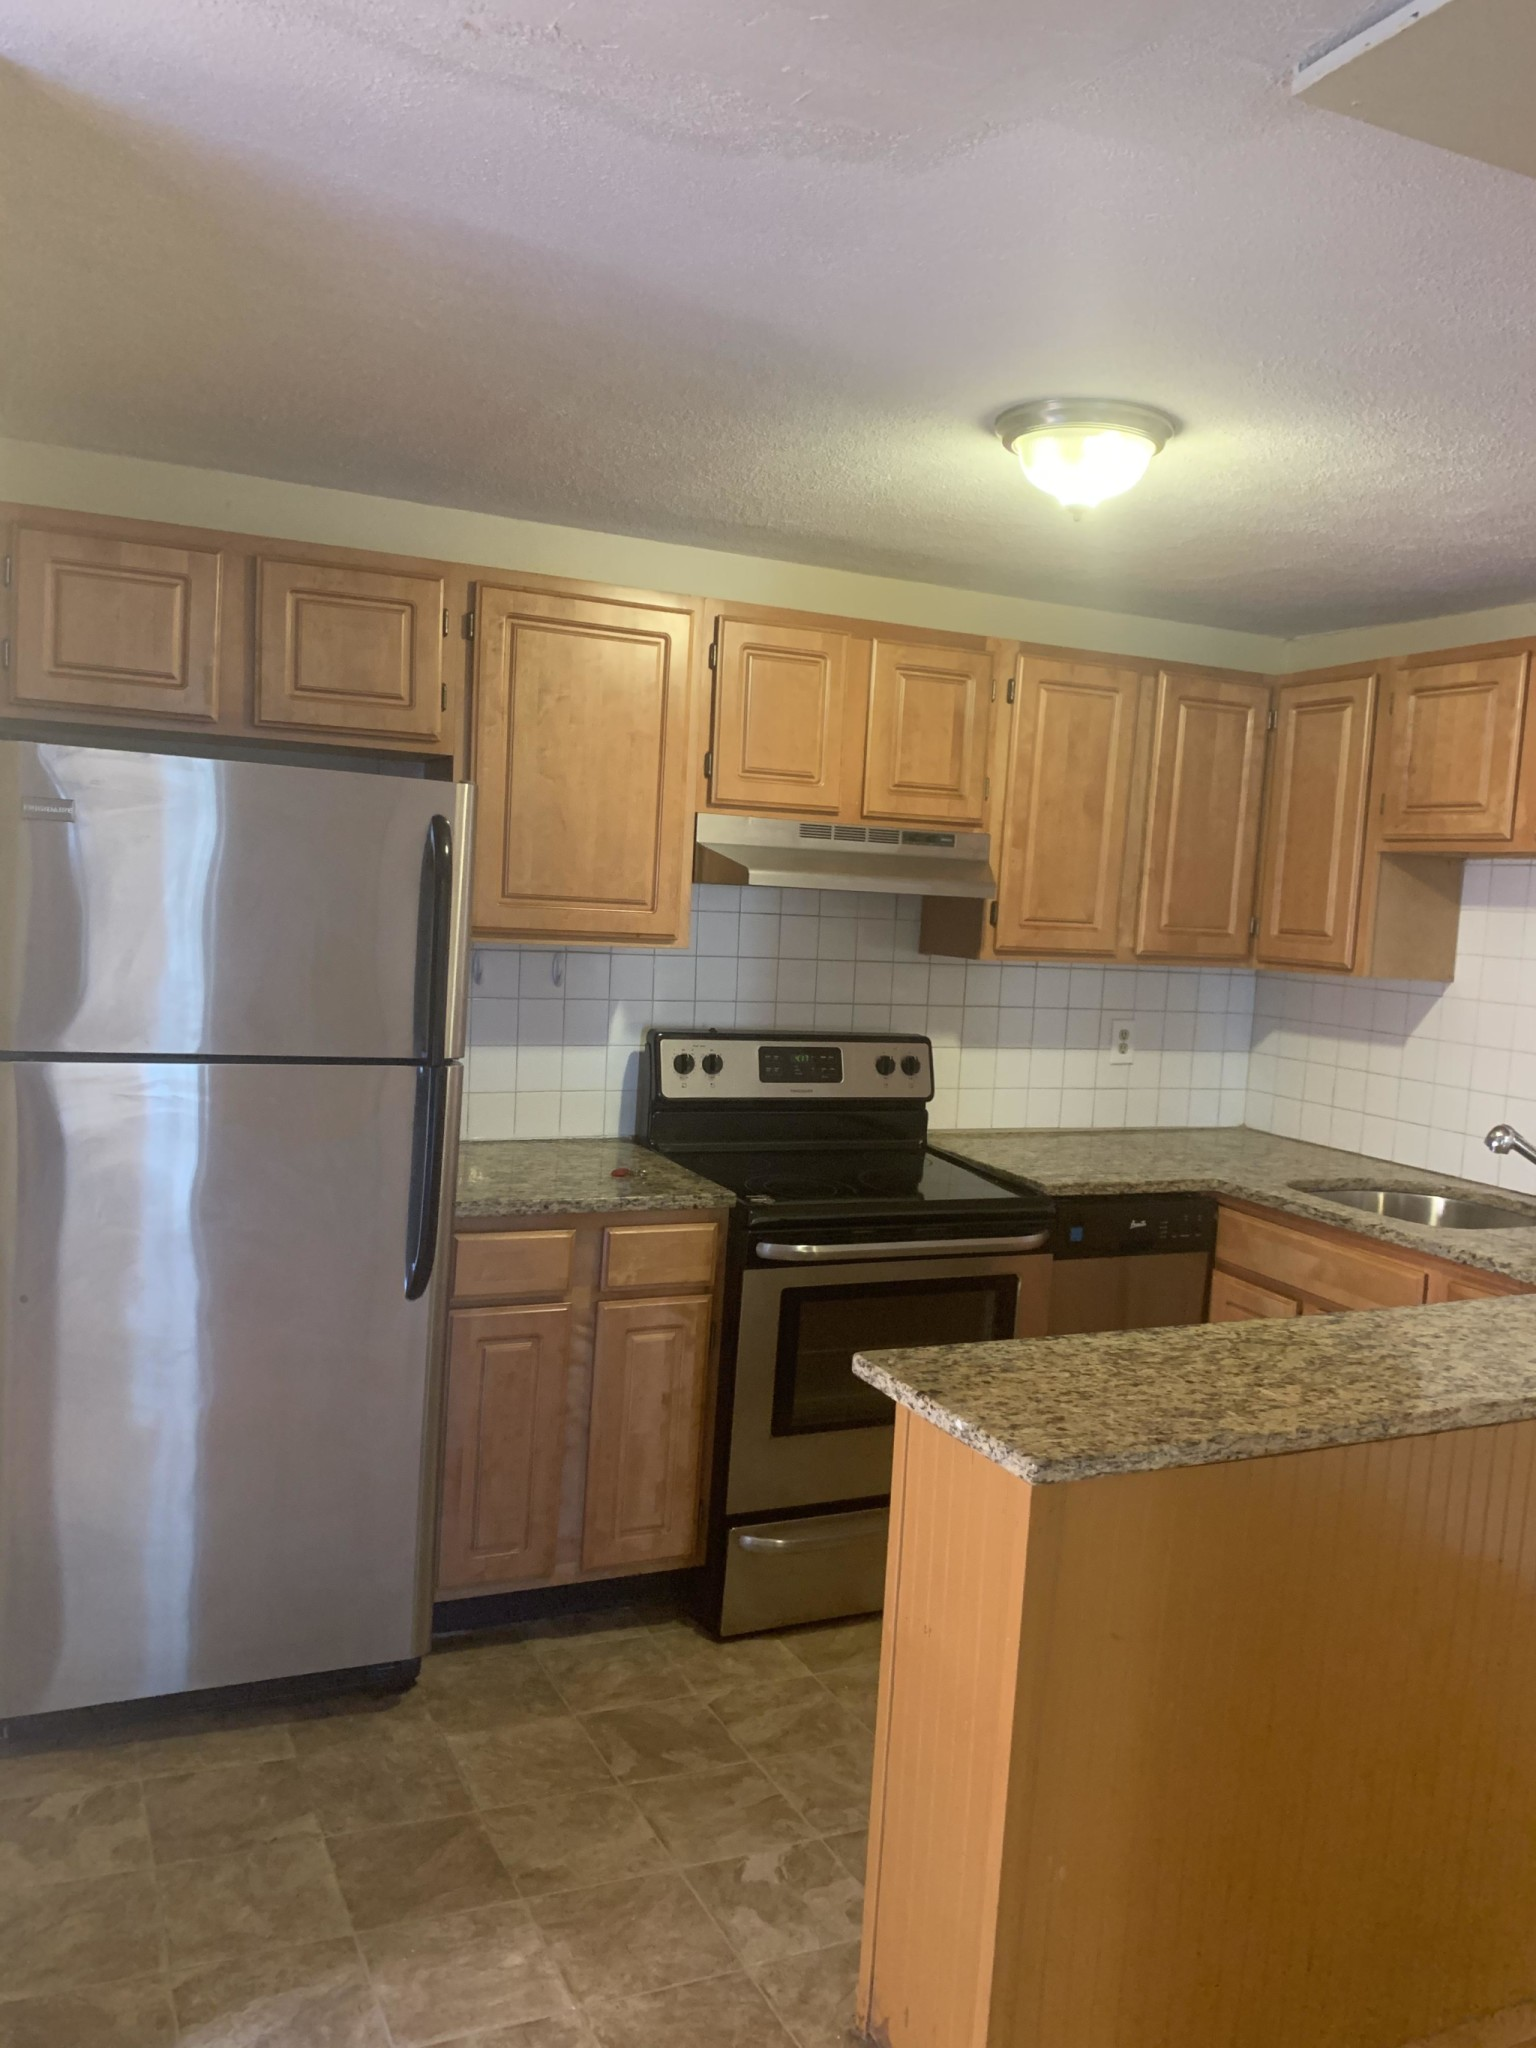 2 Beds, 1 Bath apartment in Boston, Beacon Hill for $2,450